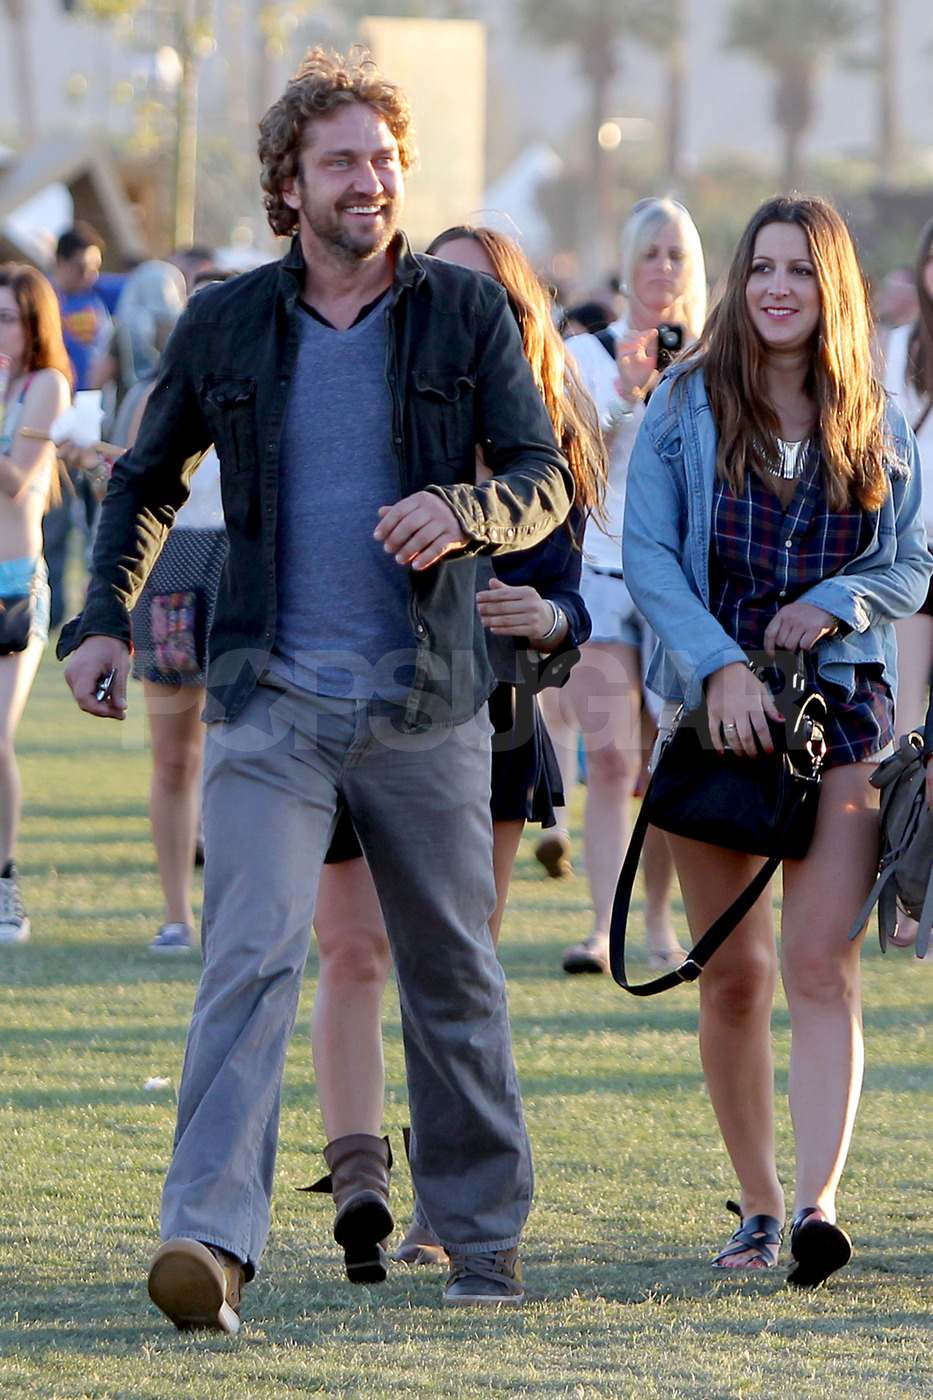 Gerard Butler hung out with the ladies on Sunday.